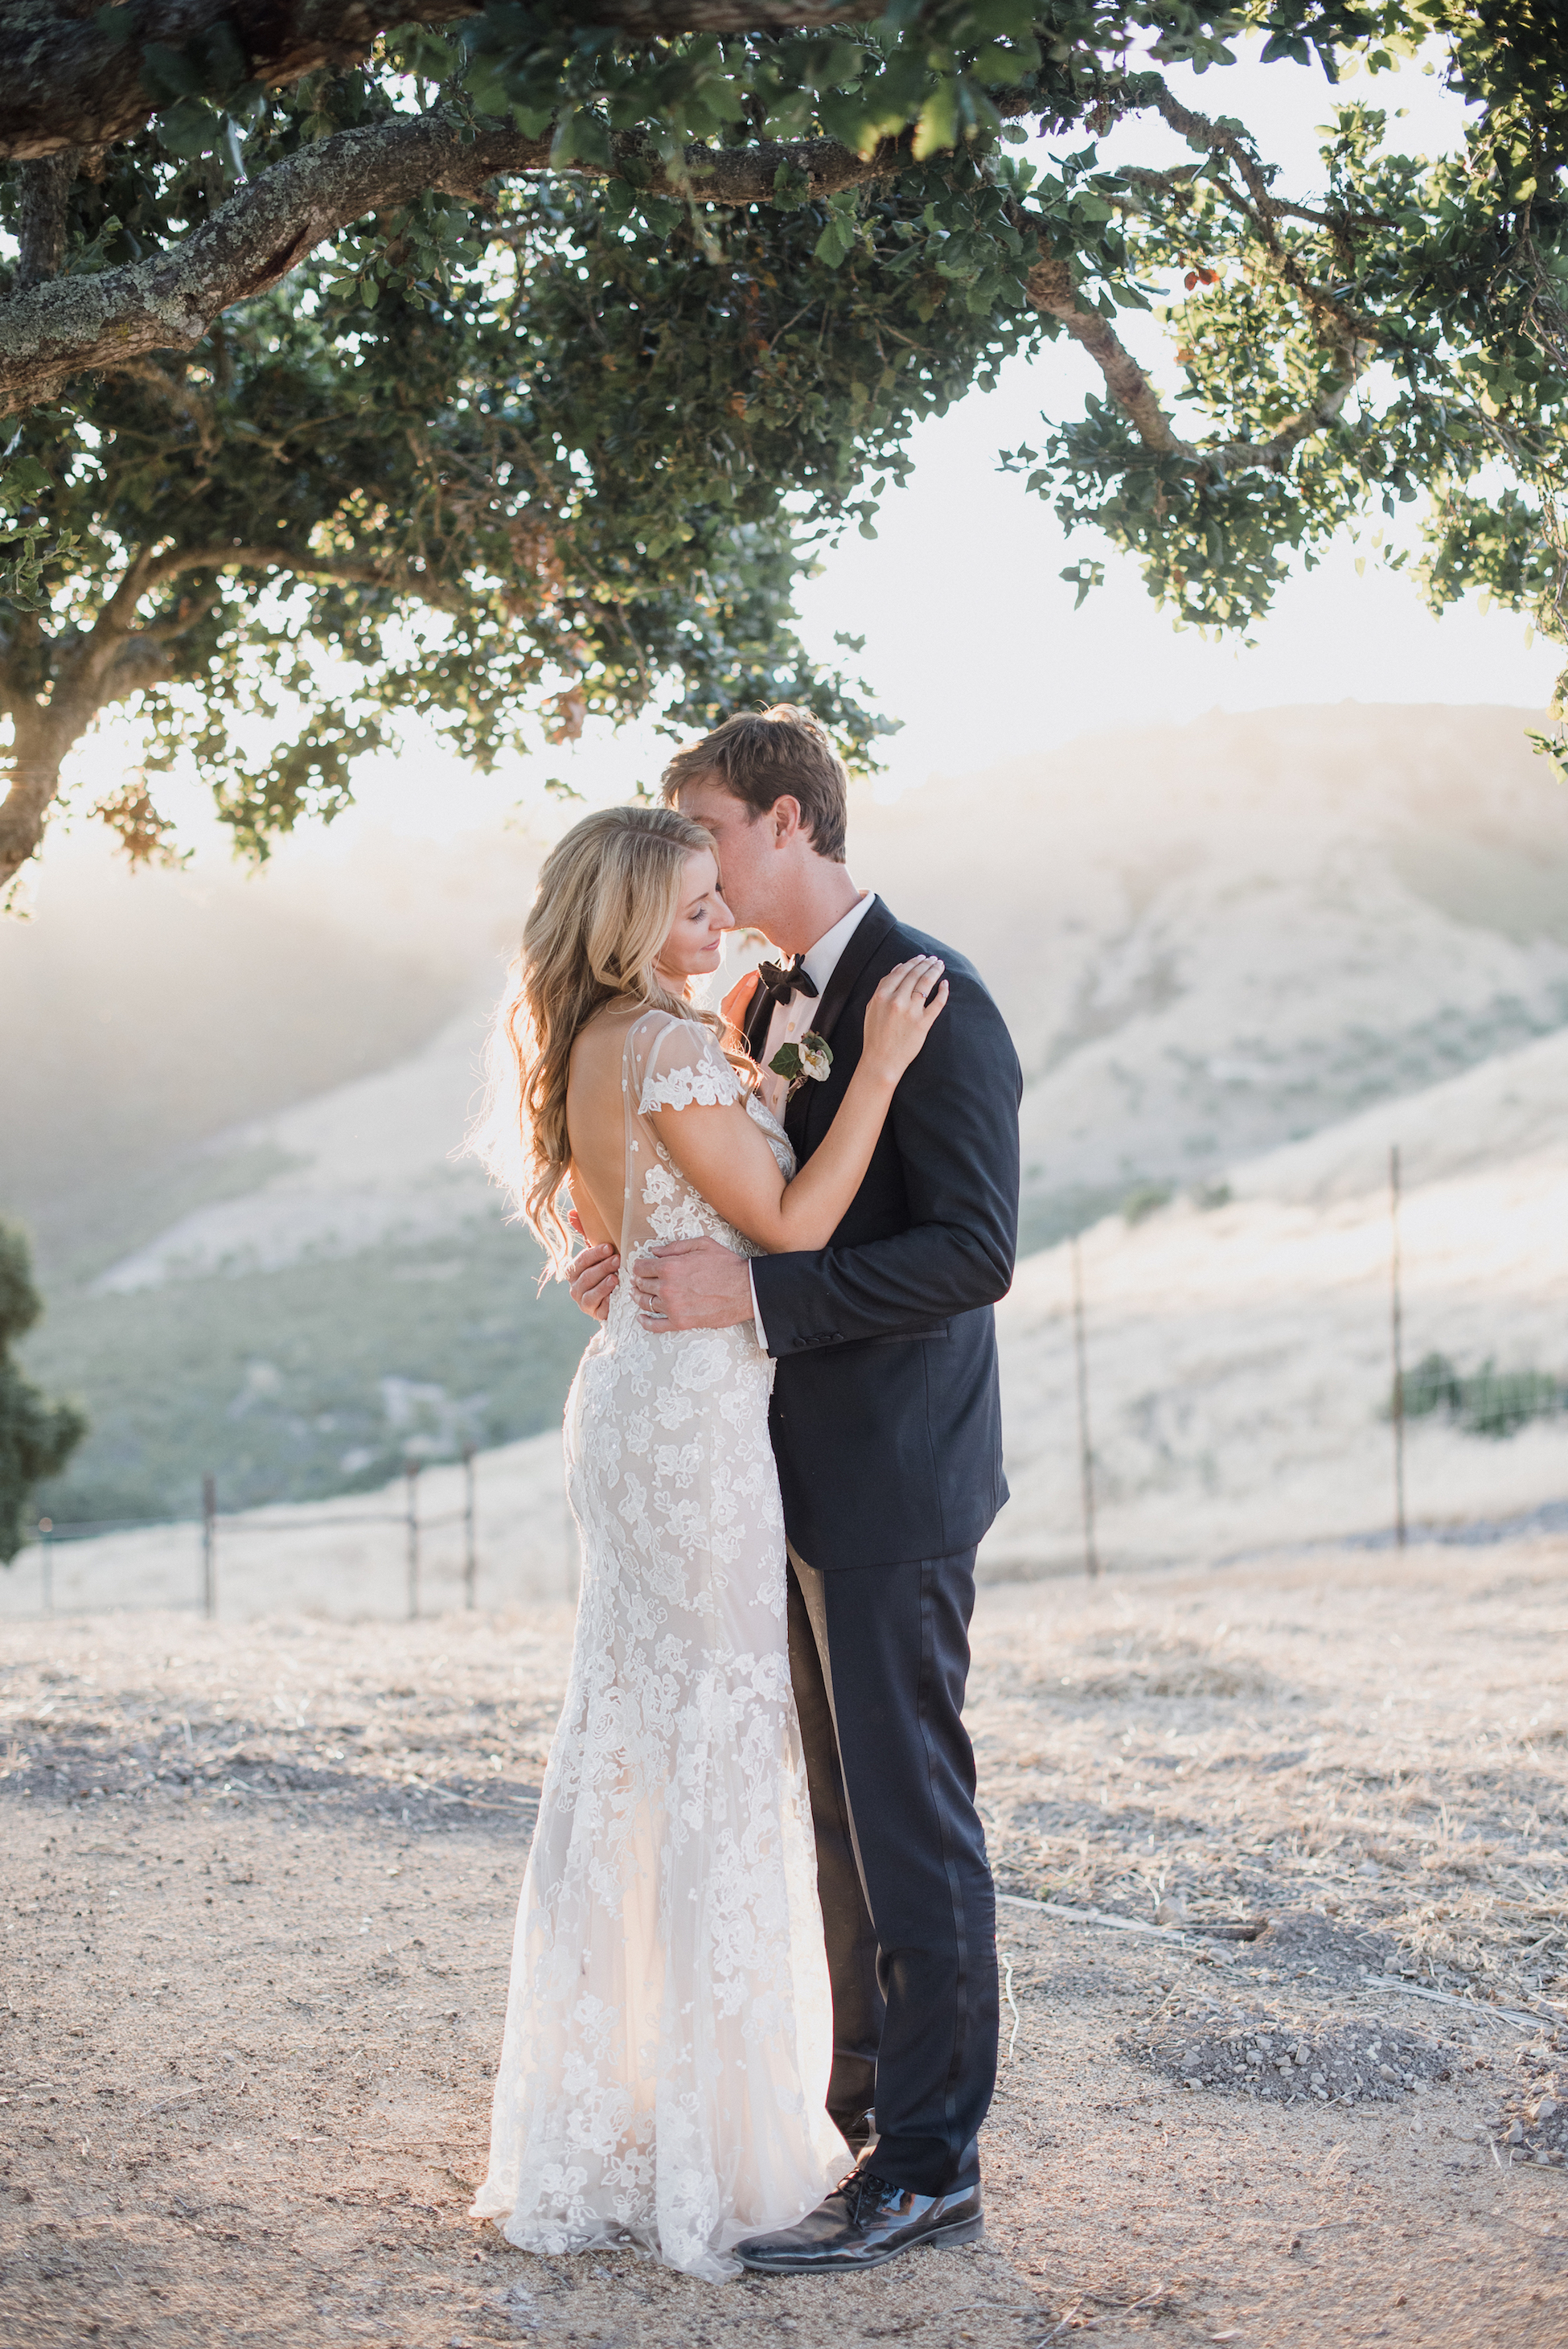 A Romantic Wedding Photo of a Couple Kissing Under a Tree